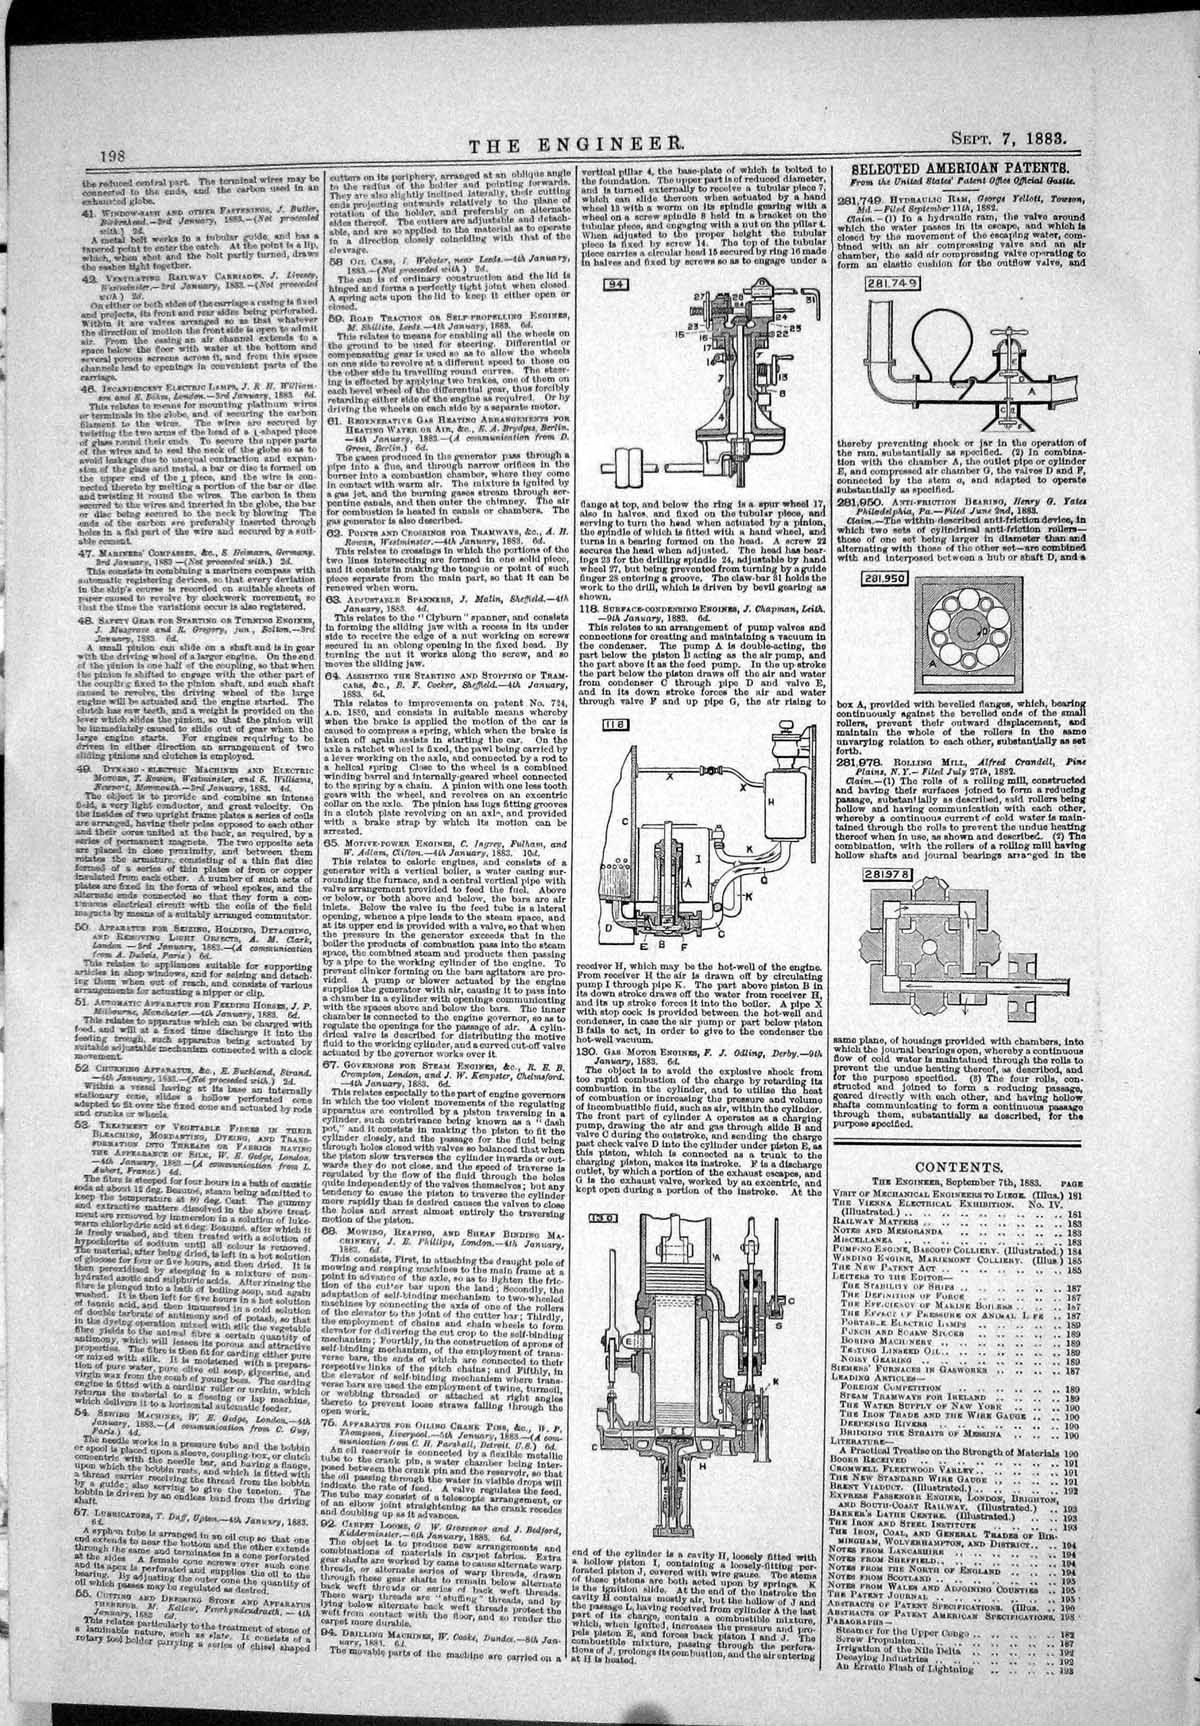 Old-Print-1883-American-Patents-Grosvenor-Chapman-Gas-Motor-Engine-Odling-19th